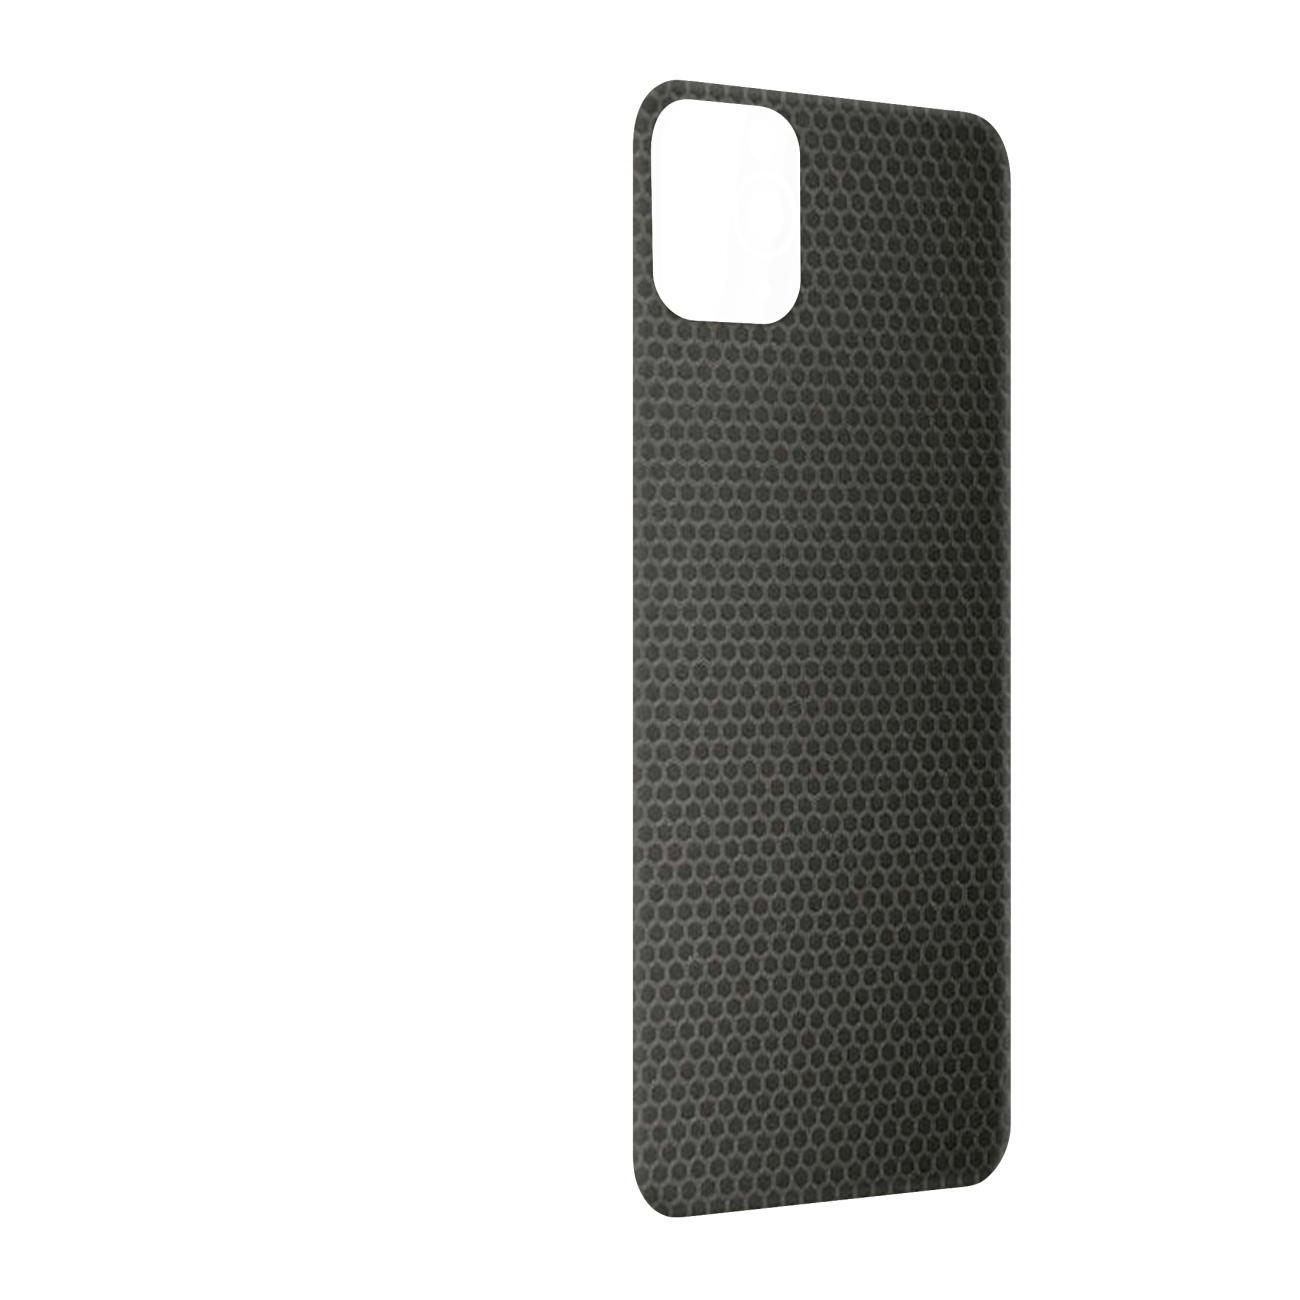 iphone-11-pro-max-skin_back-skin_black-matrix.png